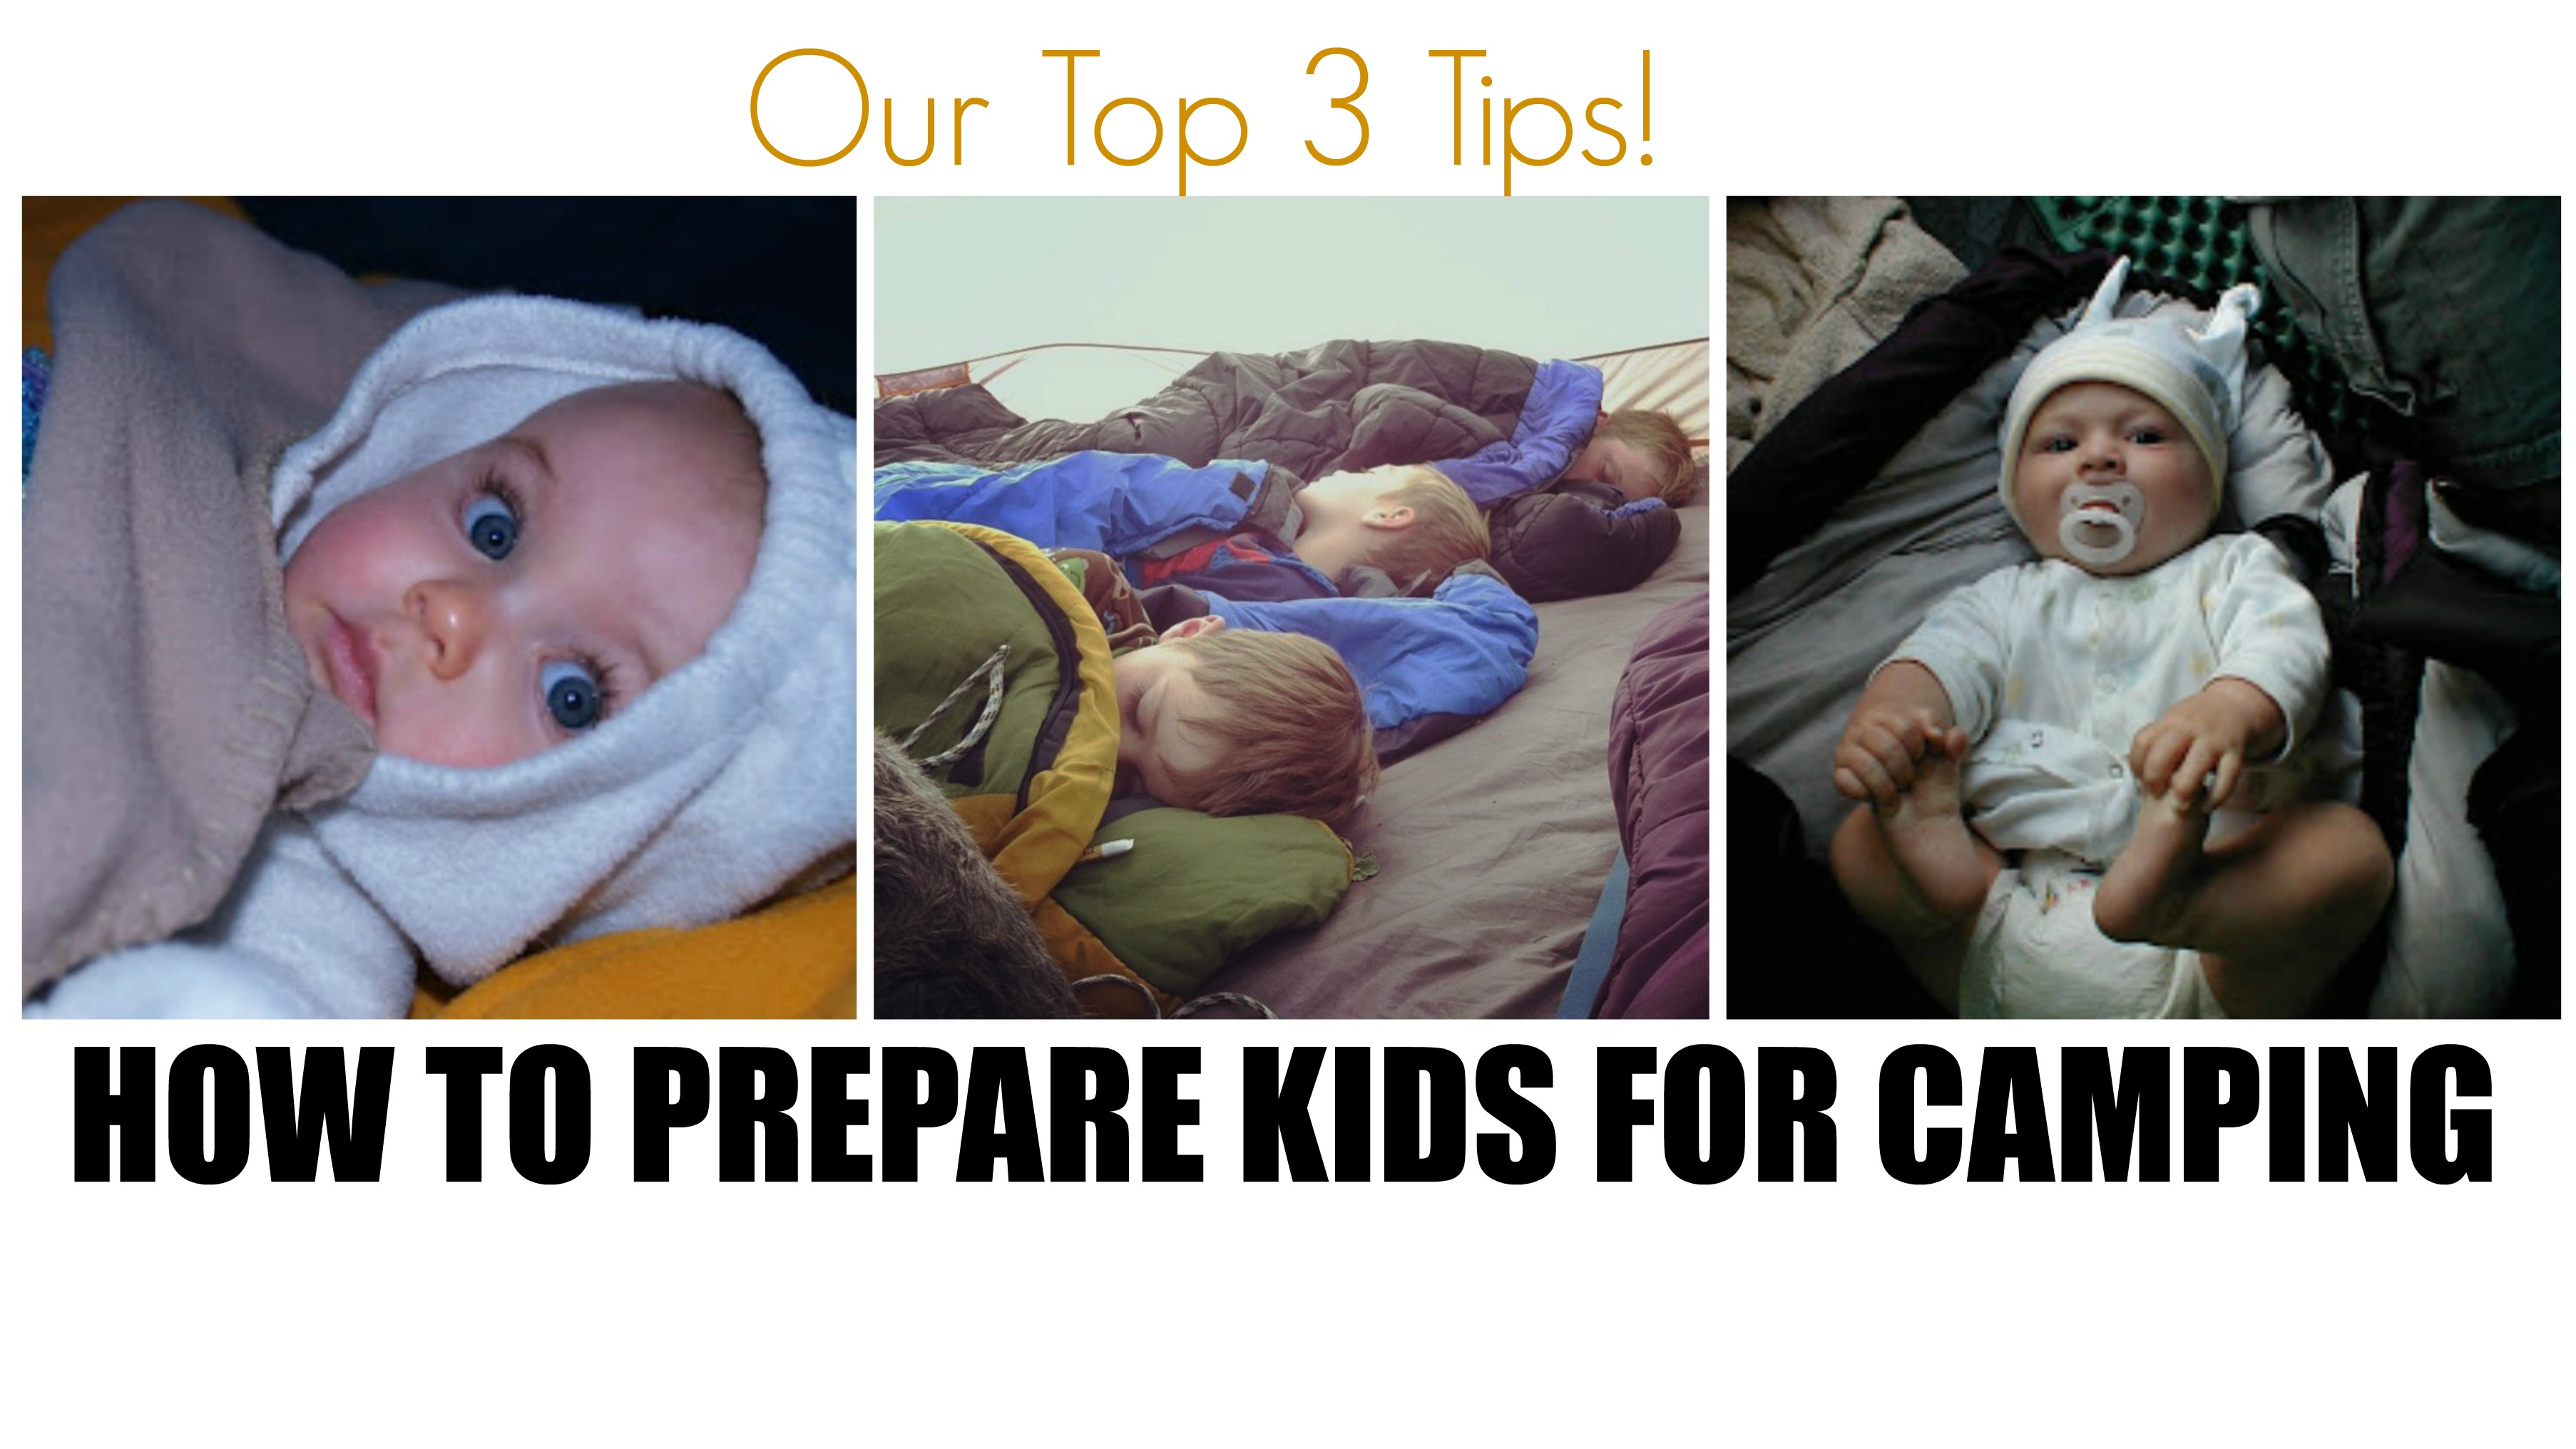 How To Prepare Kids For Camping / Our Top 3 Tips